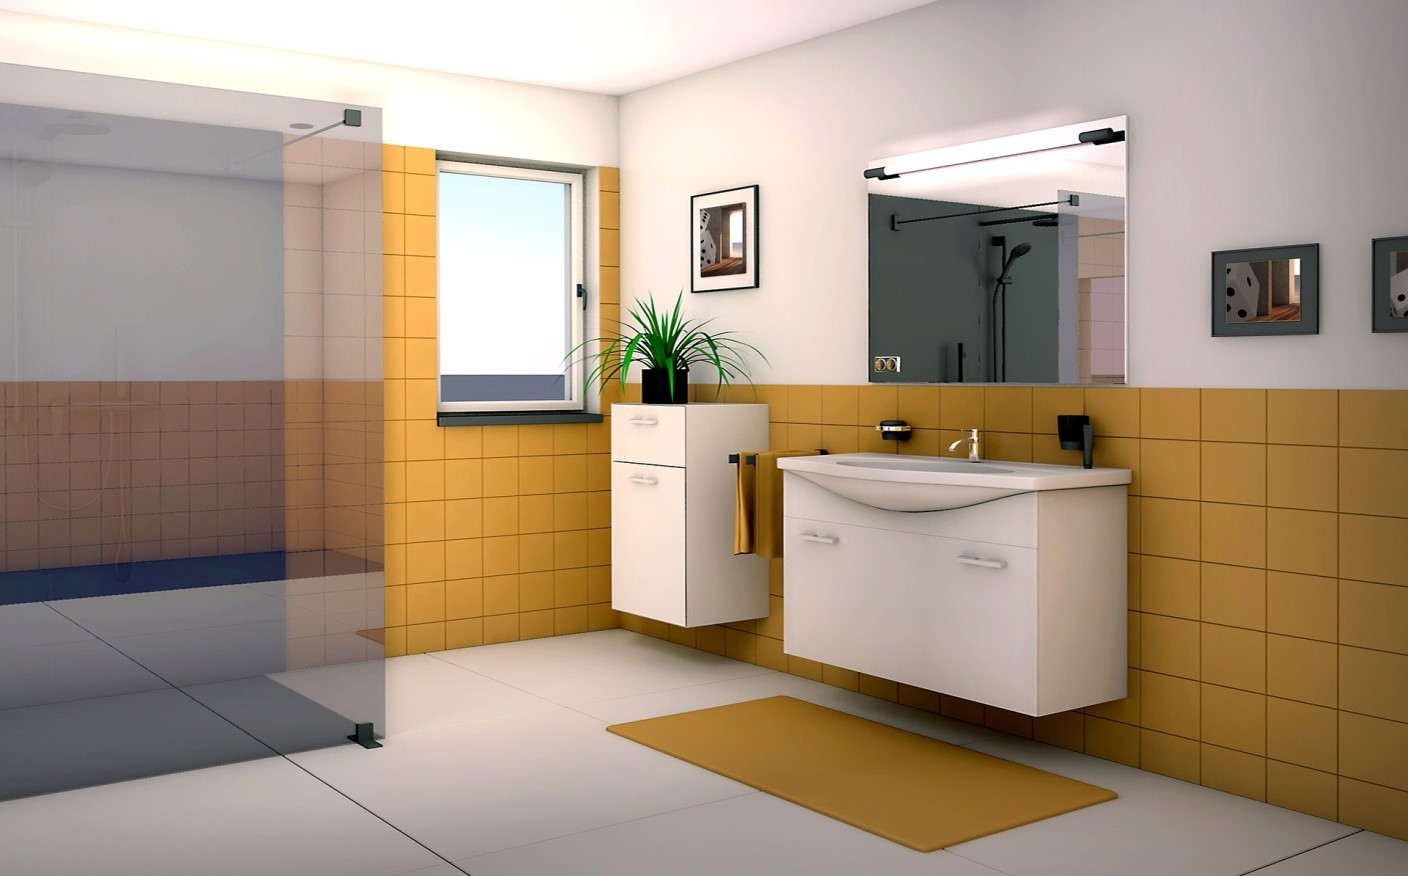 Bathroom Decorating Tips To Make The Space More Glamorous